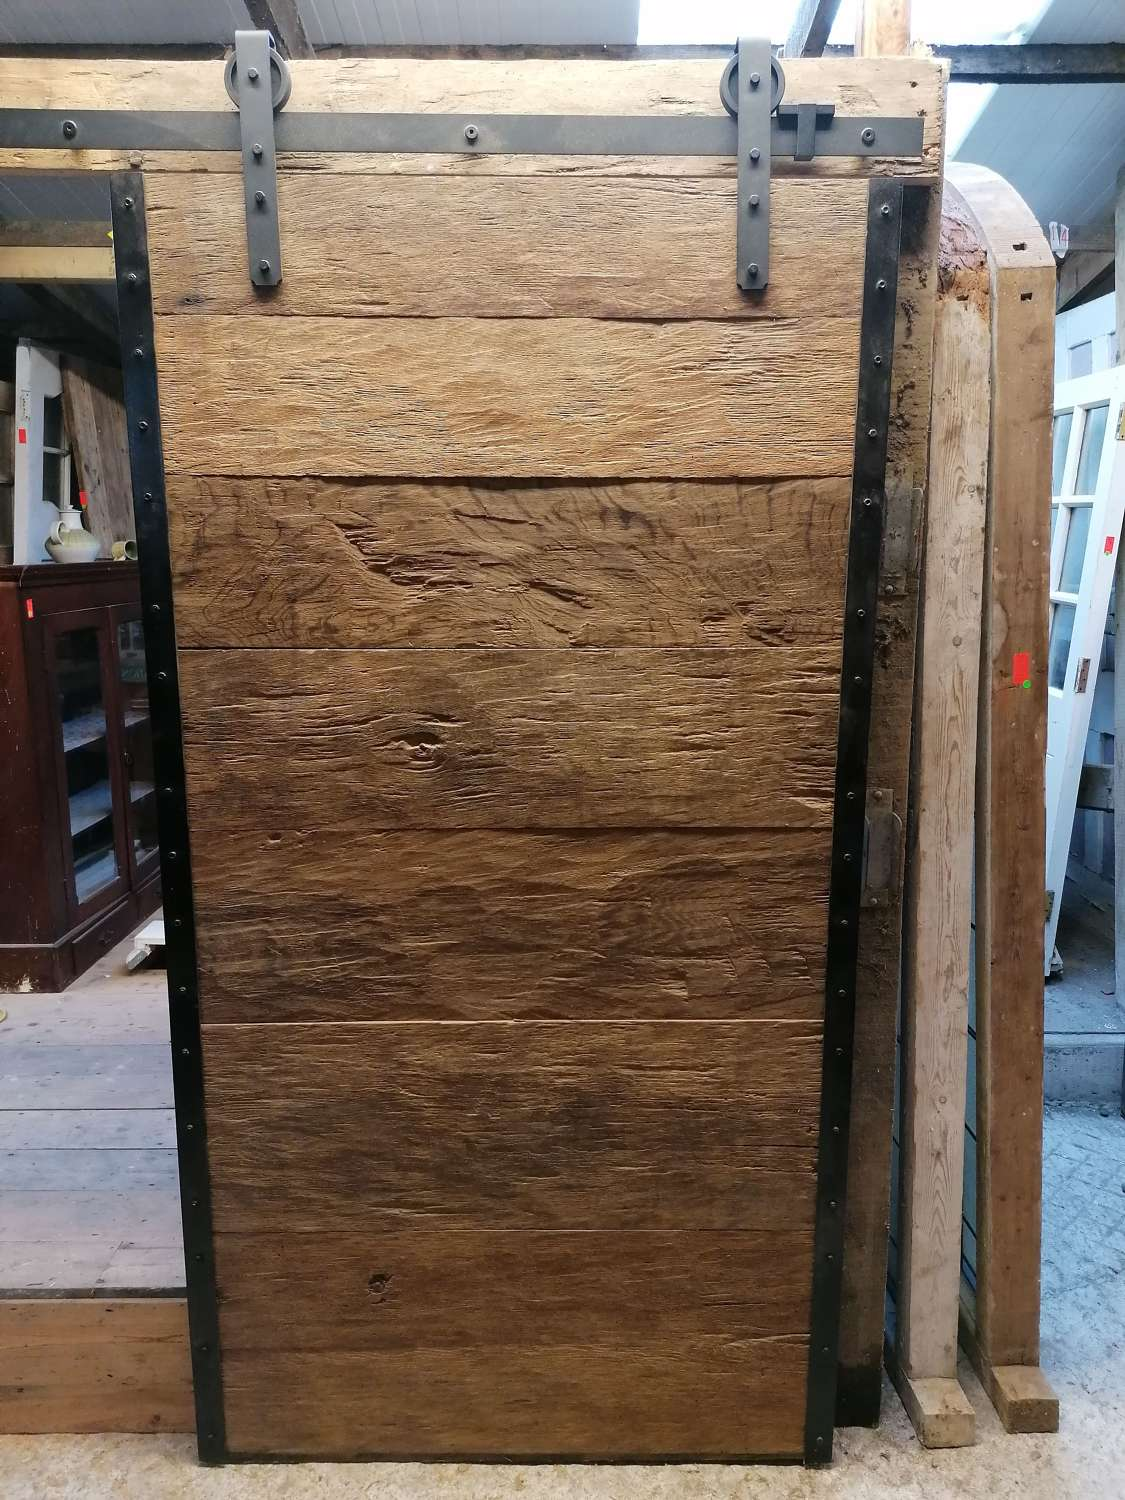 DI0734 AN INDUSTRIAL STYLE RUSTIC OAK SLIDING DOOR AND TRACK